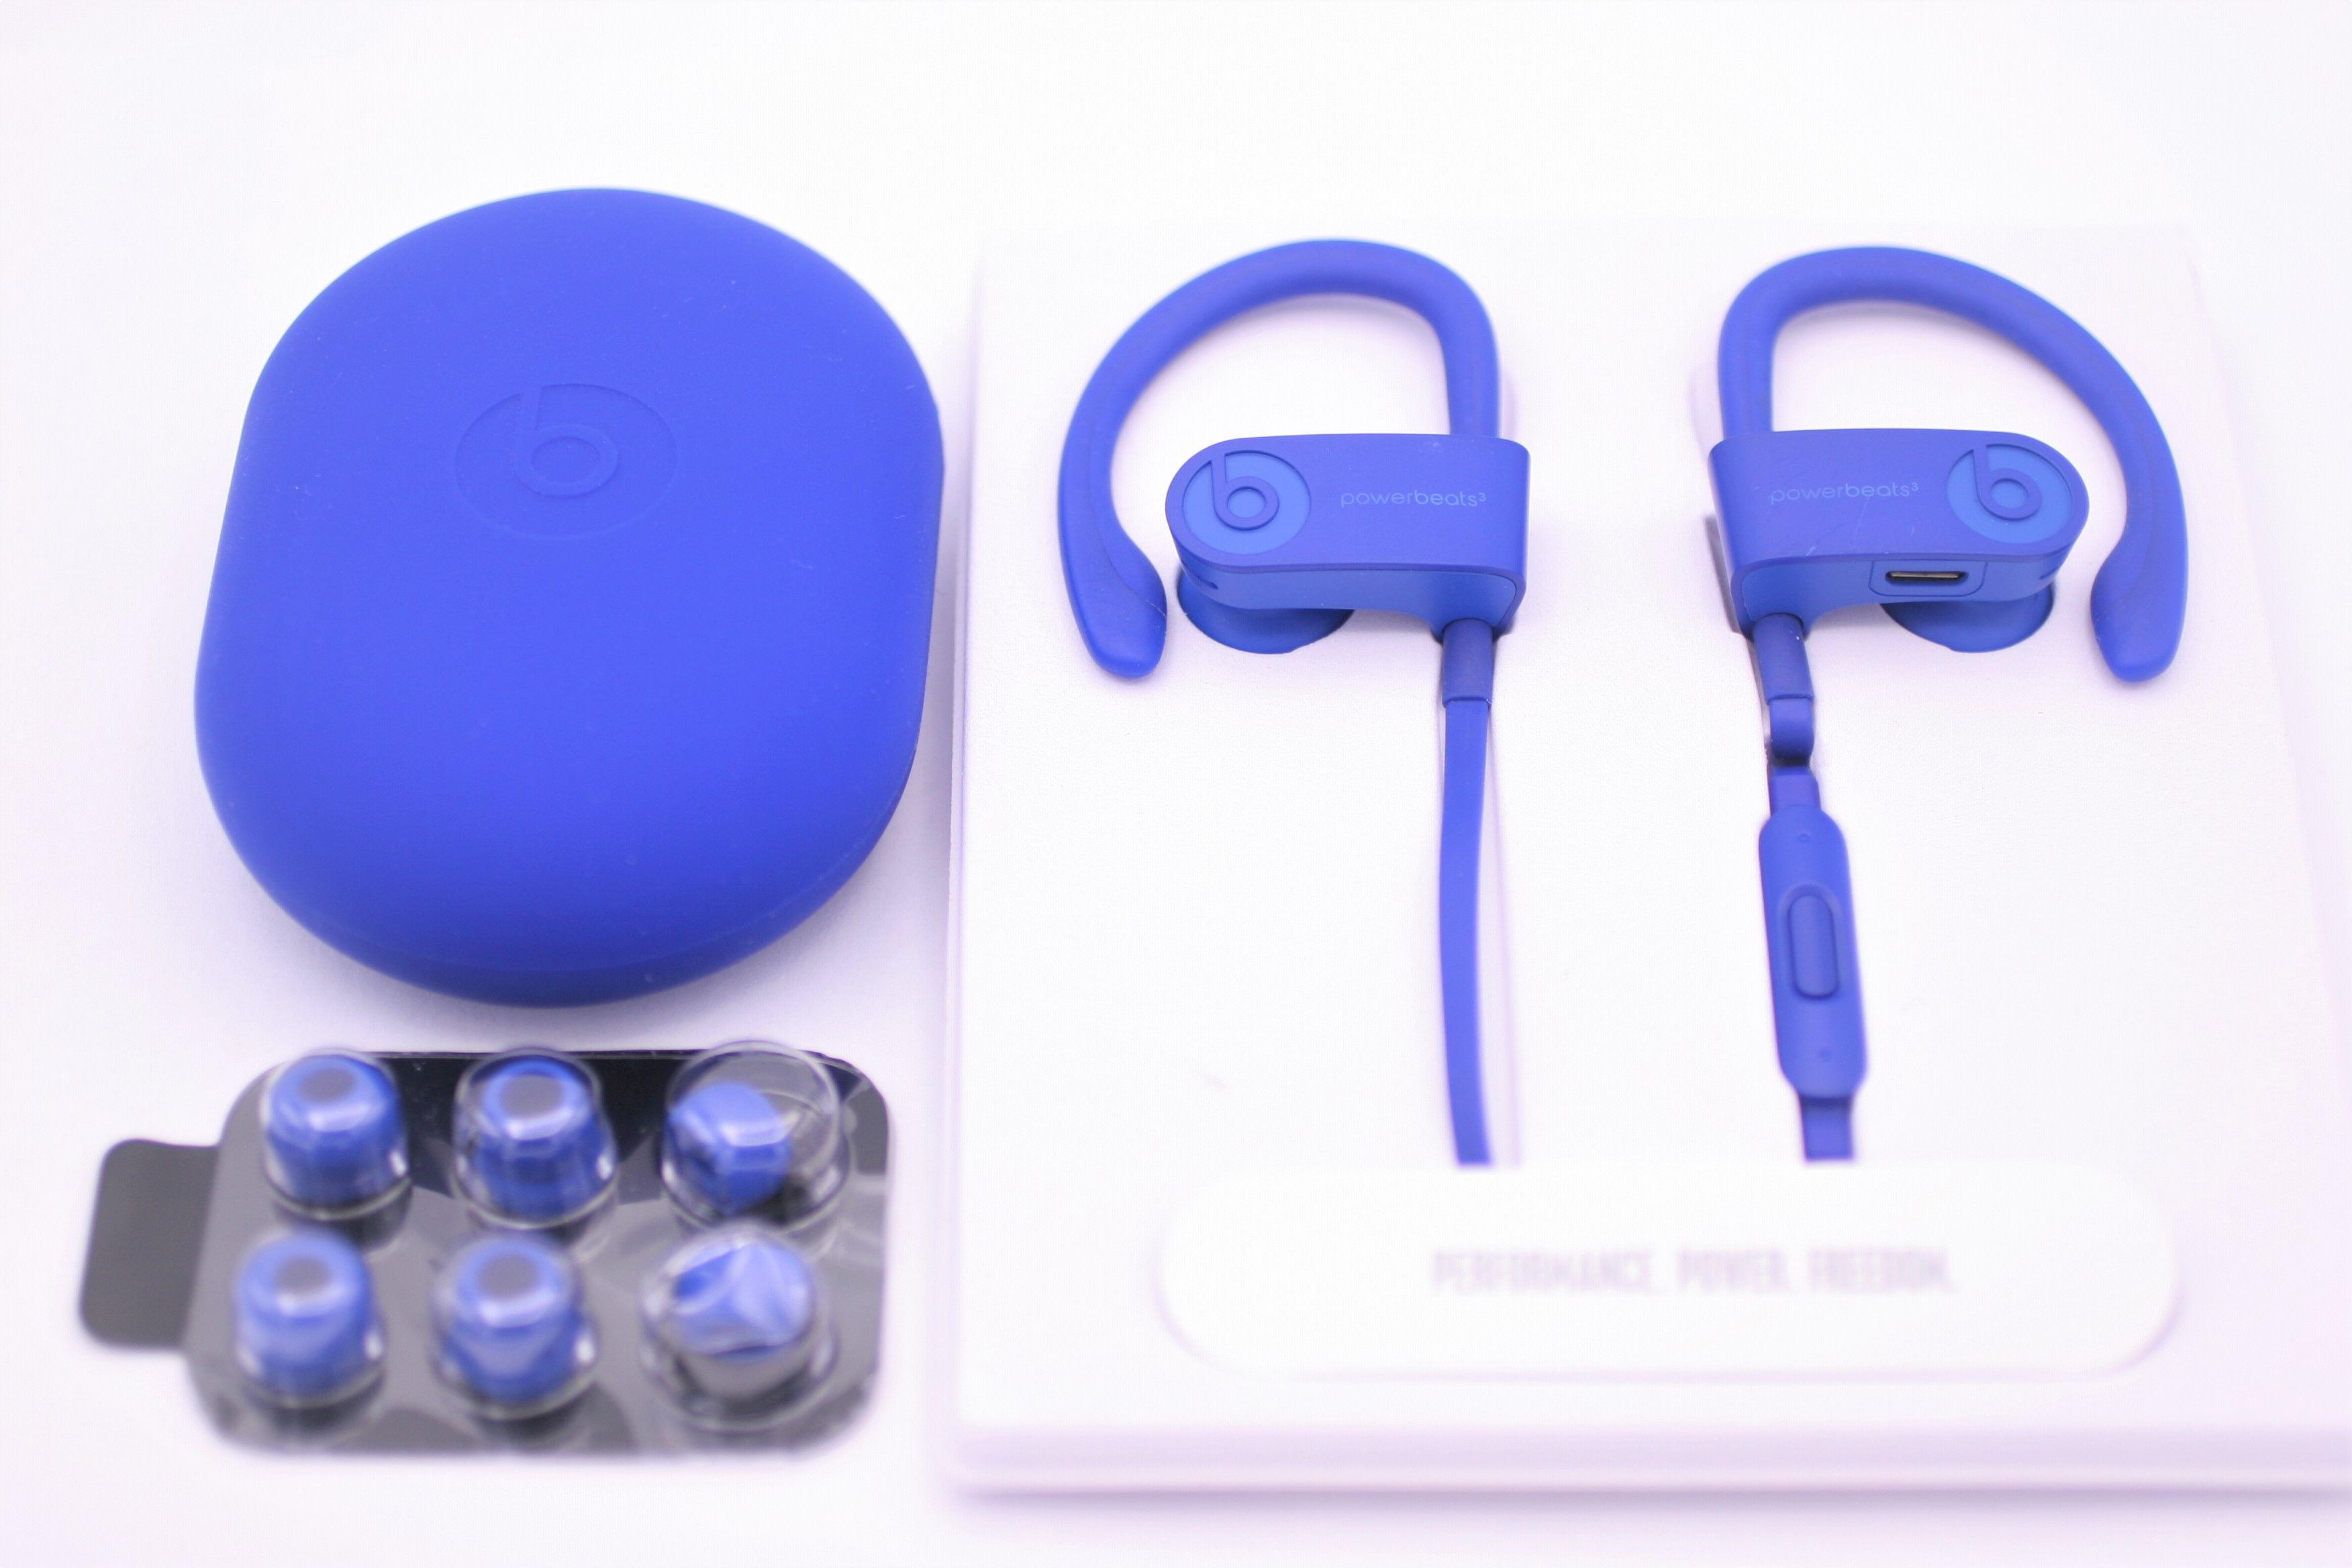 c82179737b7 Beats by Dre MQ362LL/A Powerbeats3 Wireless Earphones Break Blue | eBay